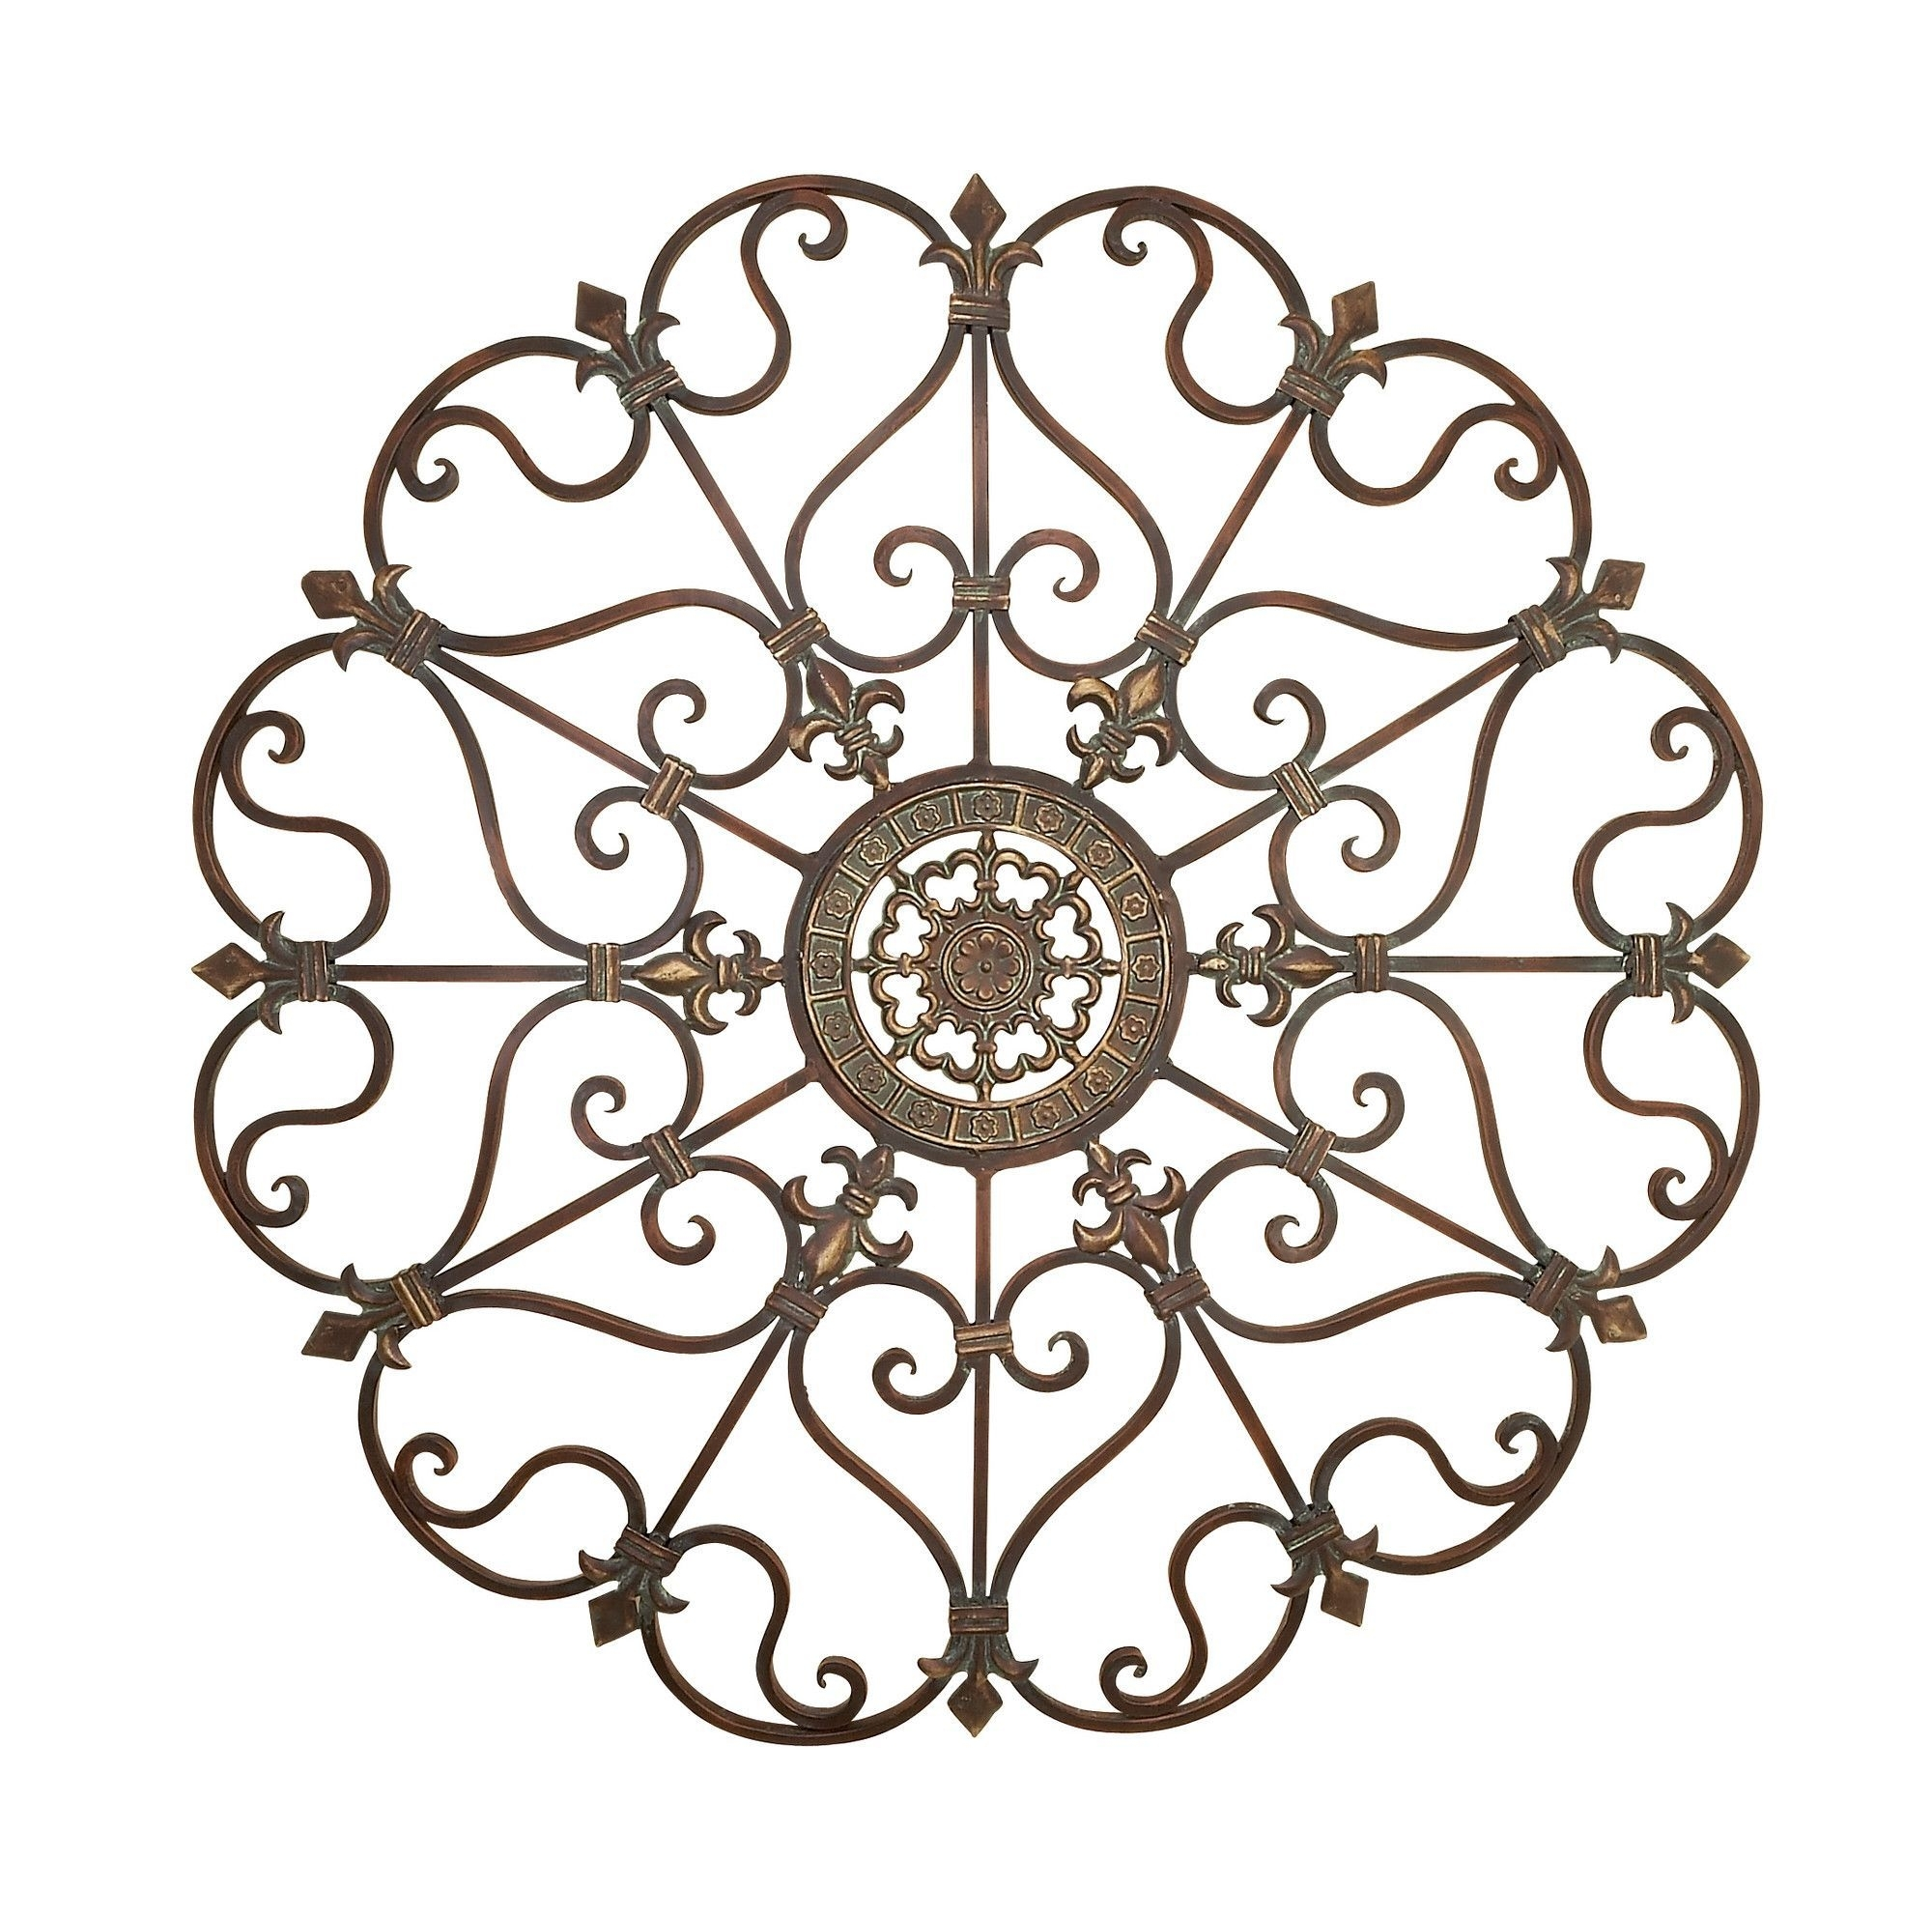 Metal Fleur De Lis Scrolling Wall Décor | Products | Pinterest intended for Metal Scroll Wall Art (Image 10 of 20)